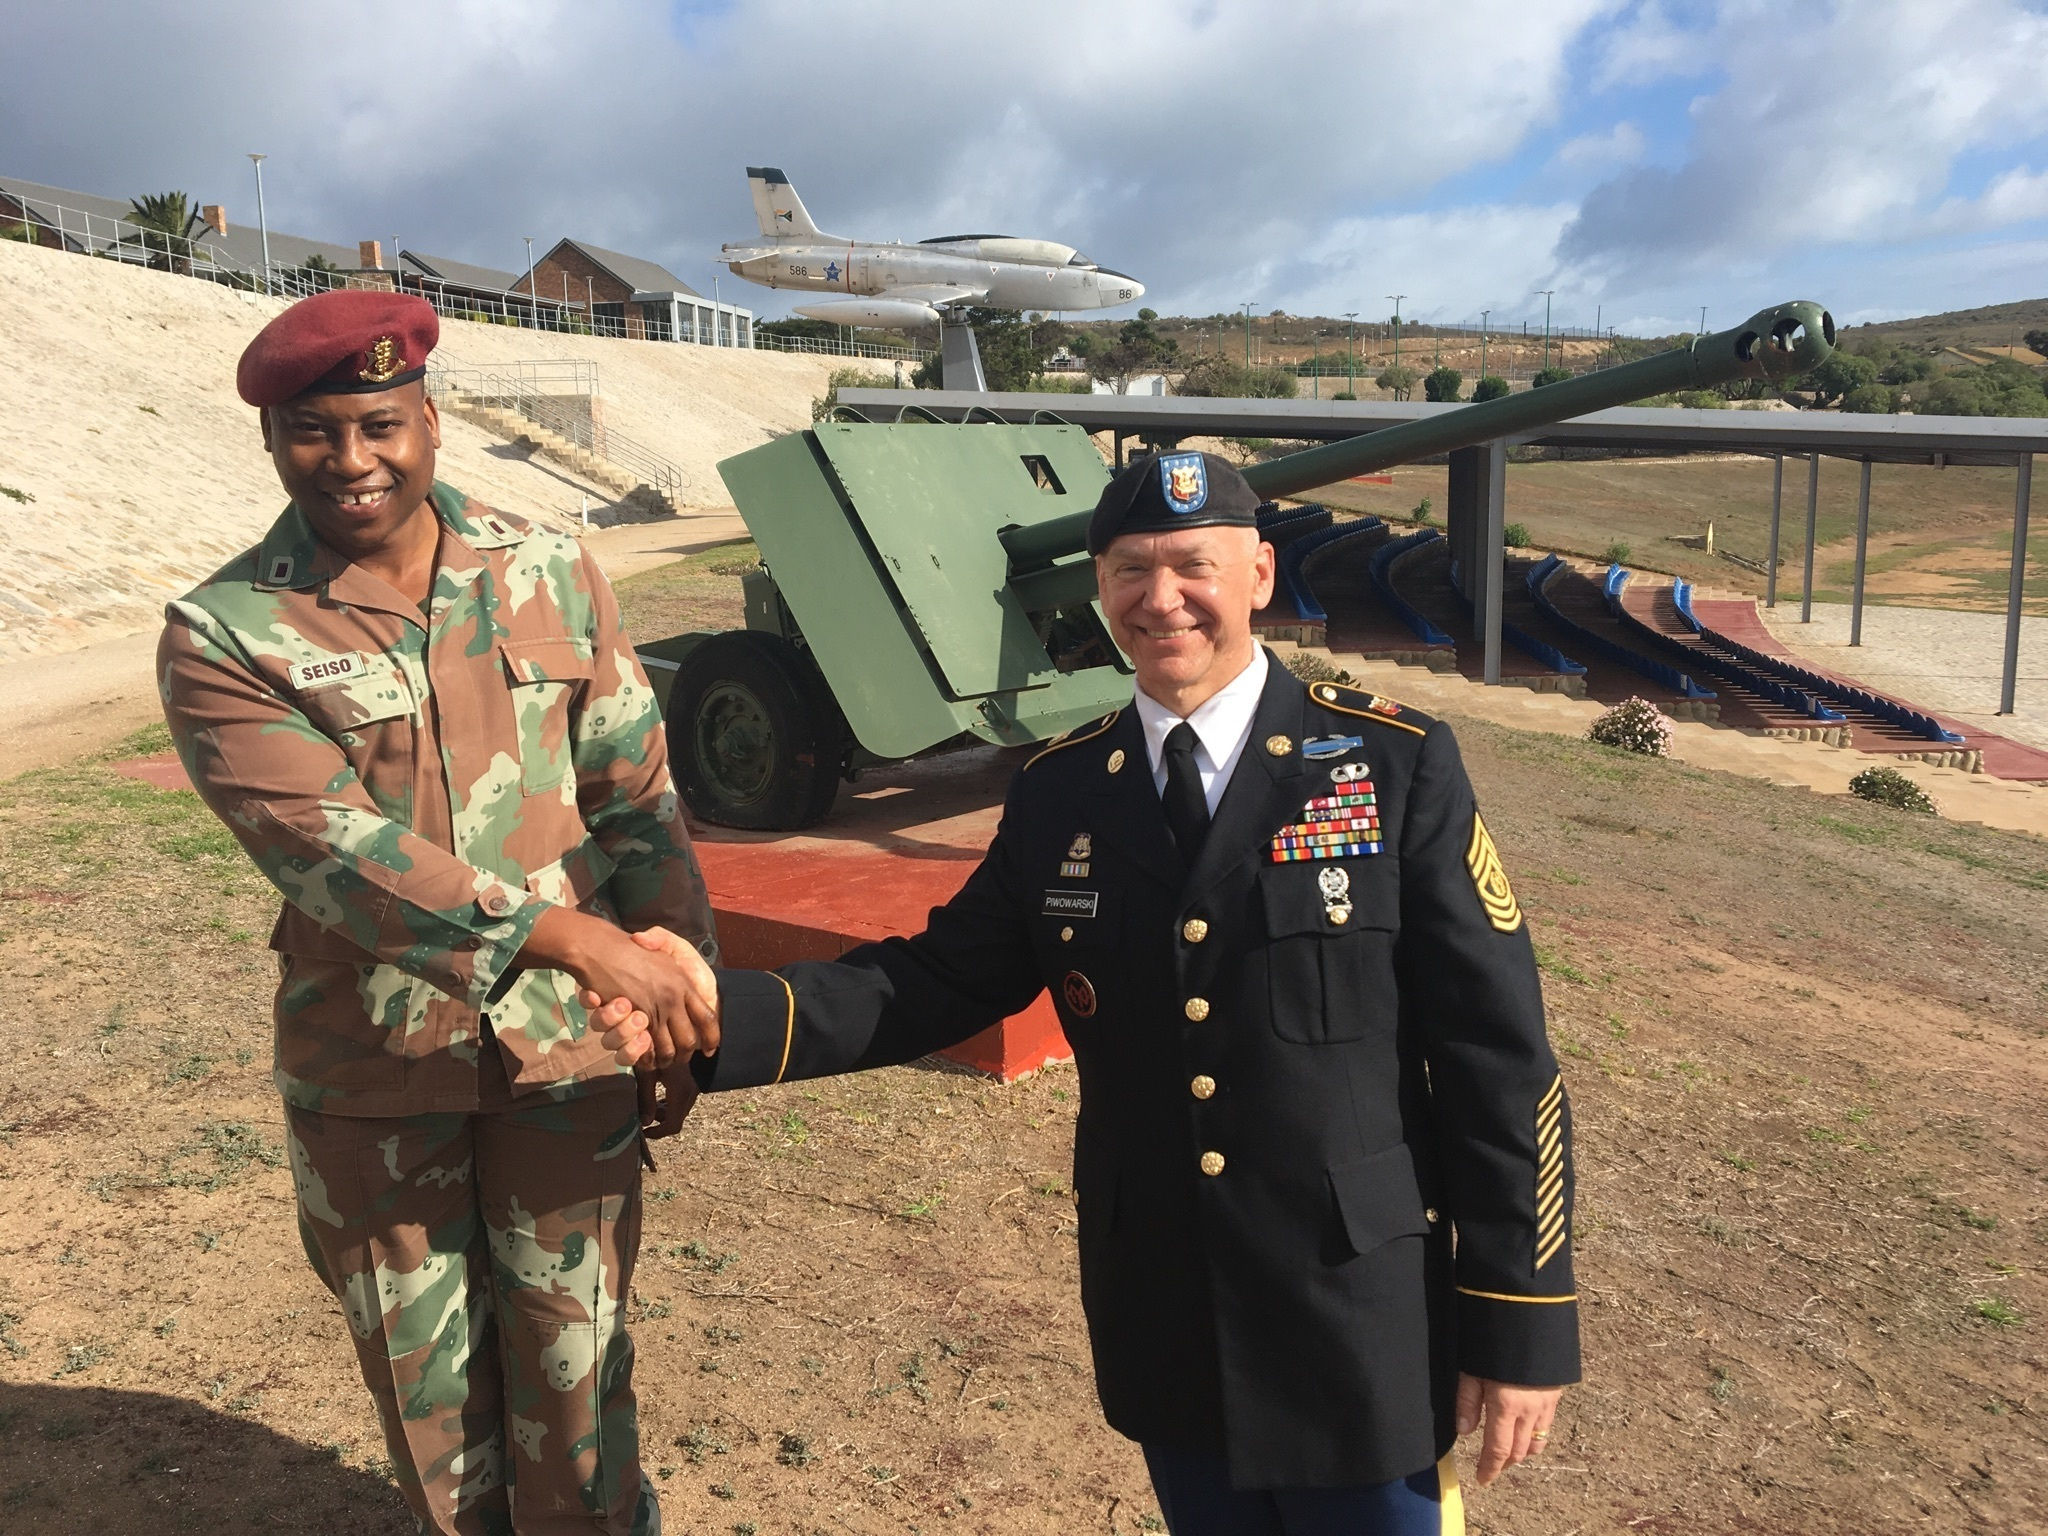 New York Army National Guard Command Sgt. Major David Piwowarski, meets with Cadet T. Seiso at the Military Academy of South Africa in Saldanha,  Western Cape Province, South Africa on May 8, 2018. German was speaking at the Academy as part of an exchange program executed as part of the New York National Guard State Partnership Program relationship with the South African National Defense Force. (U.S. Army National Guard photo by Major Al Philips.)